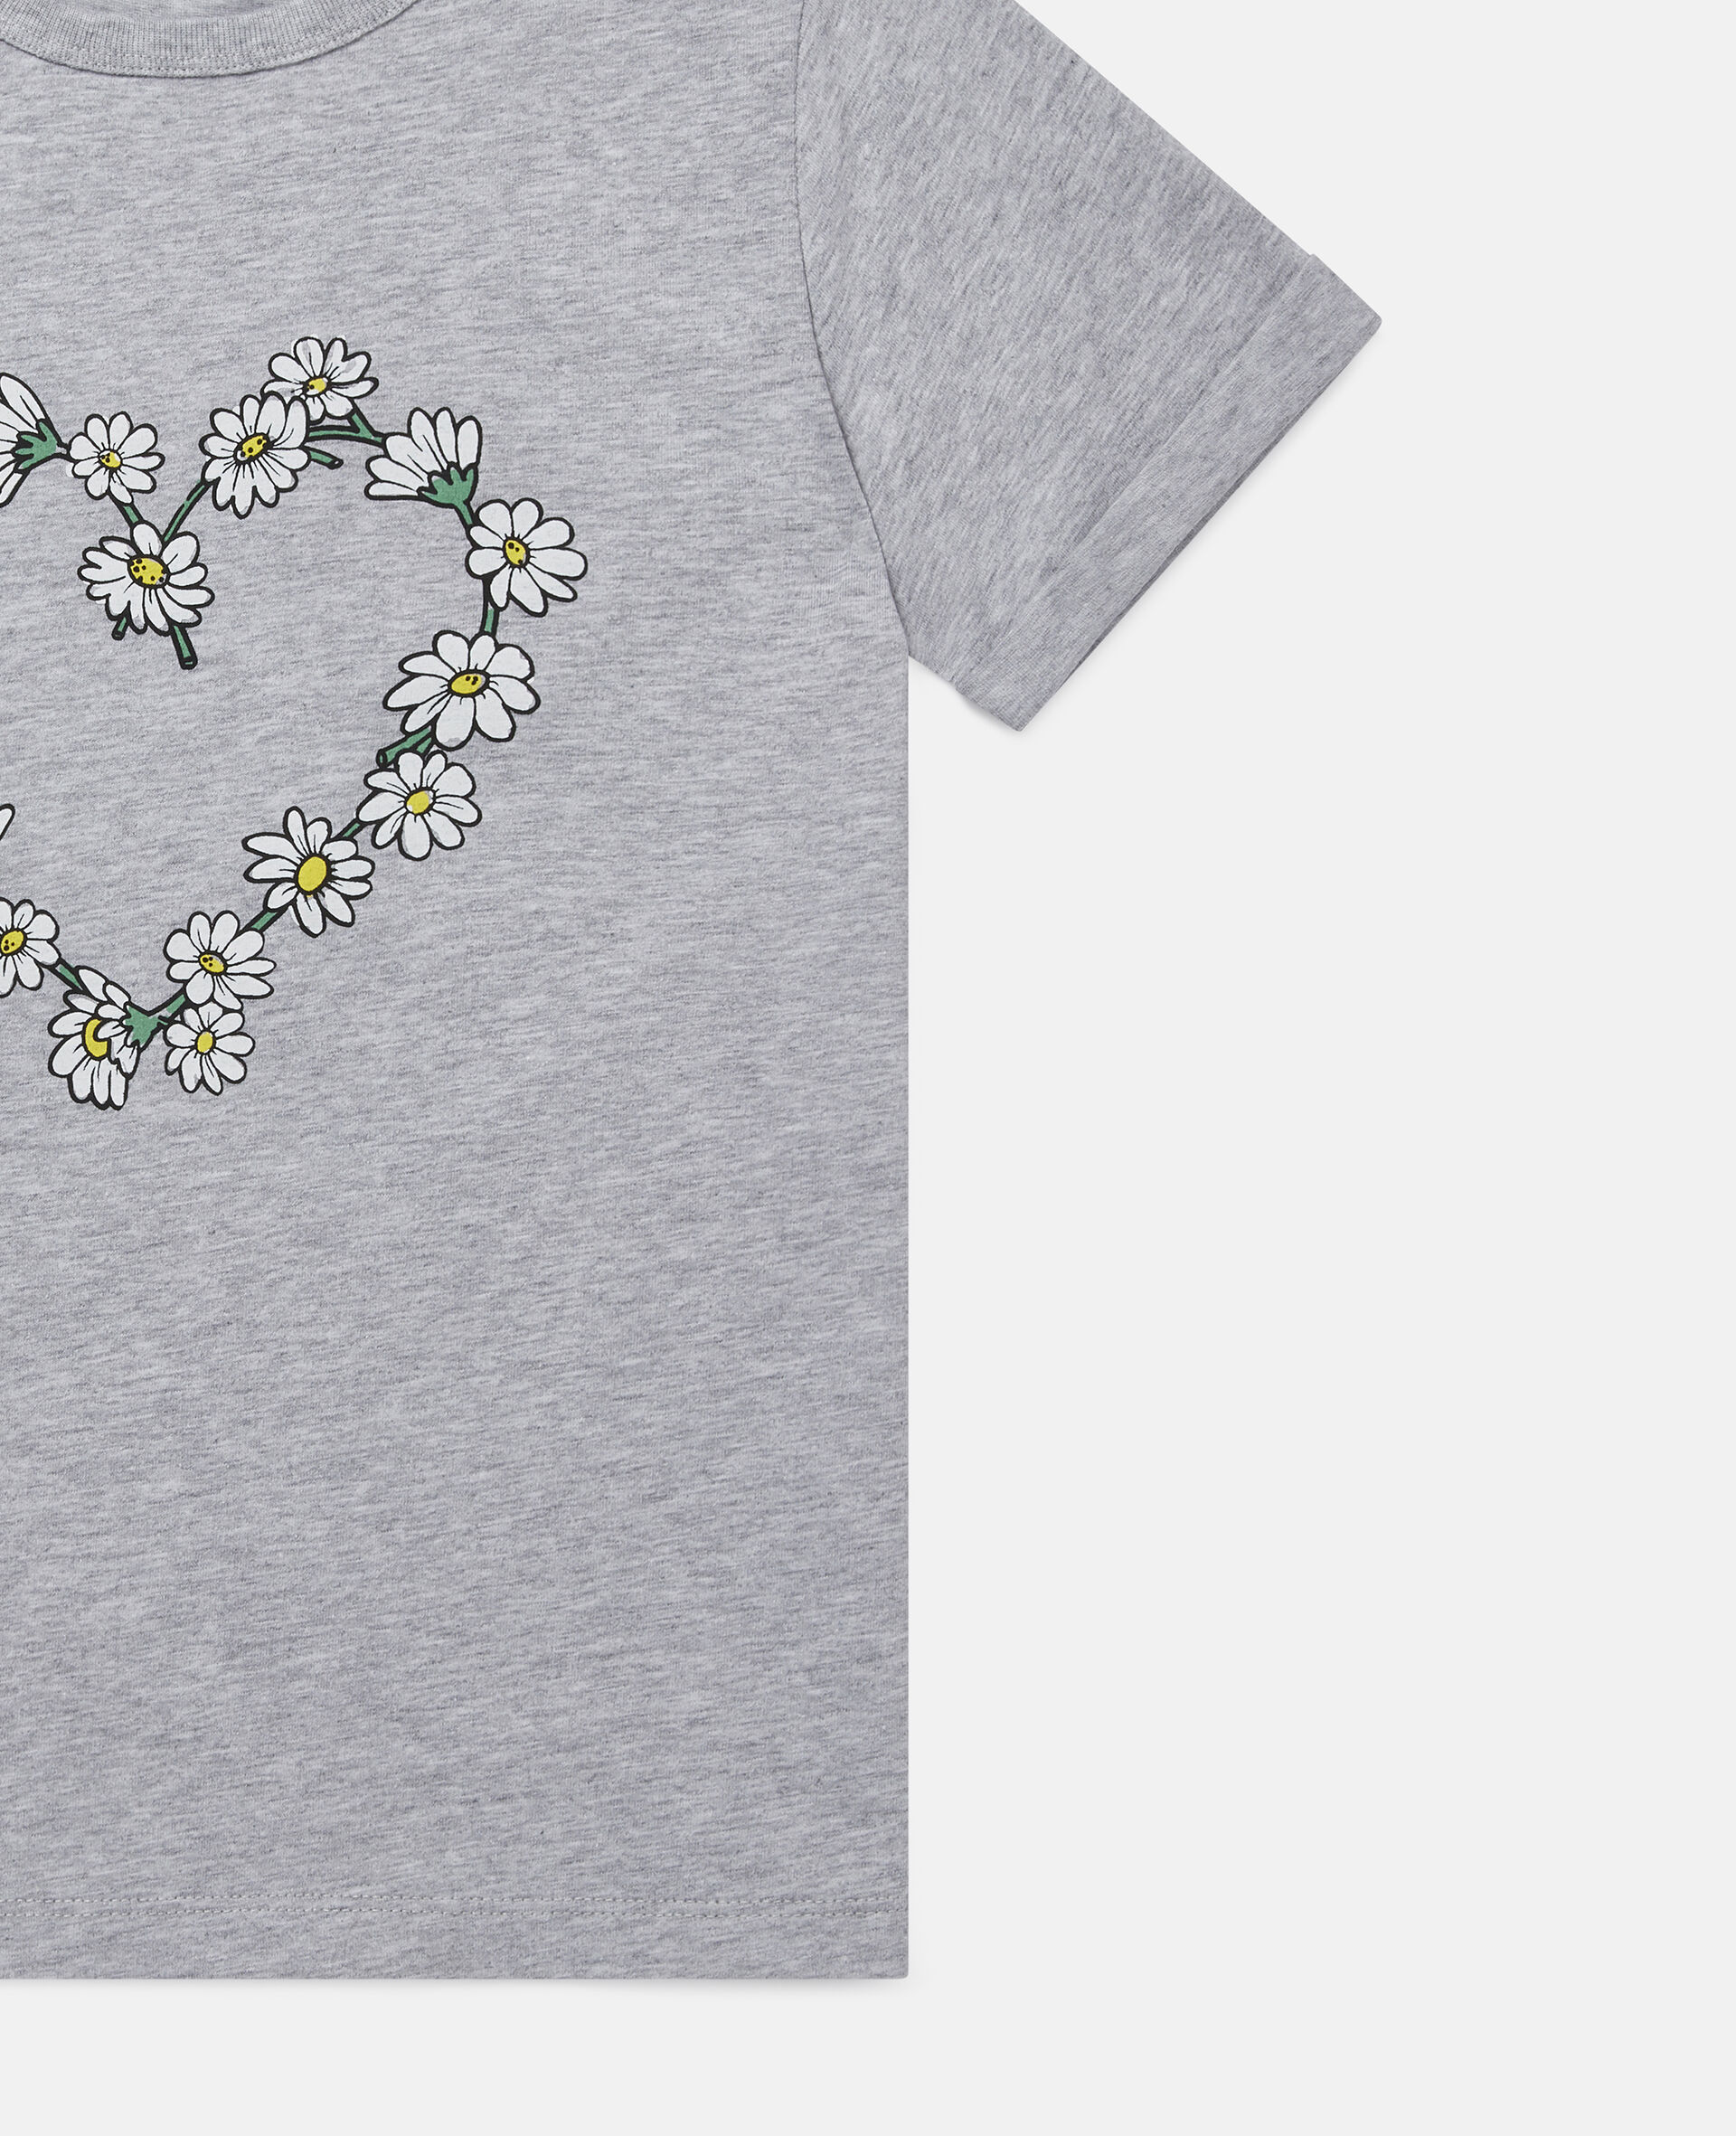 Daisy Heart Cotton T-Shirt-Grey-large image number 1